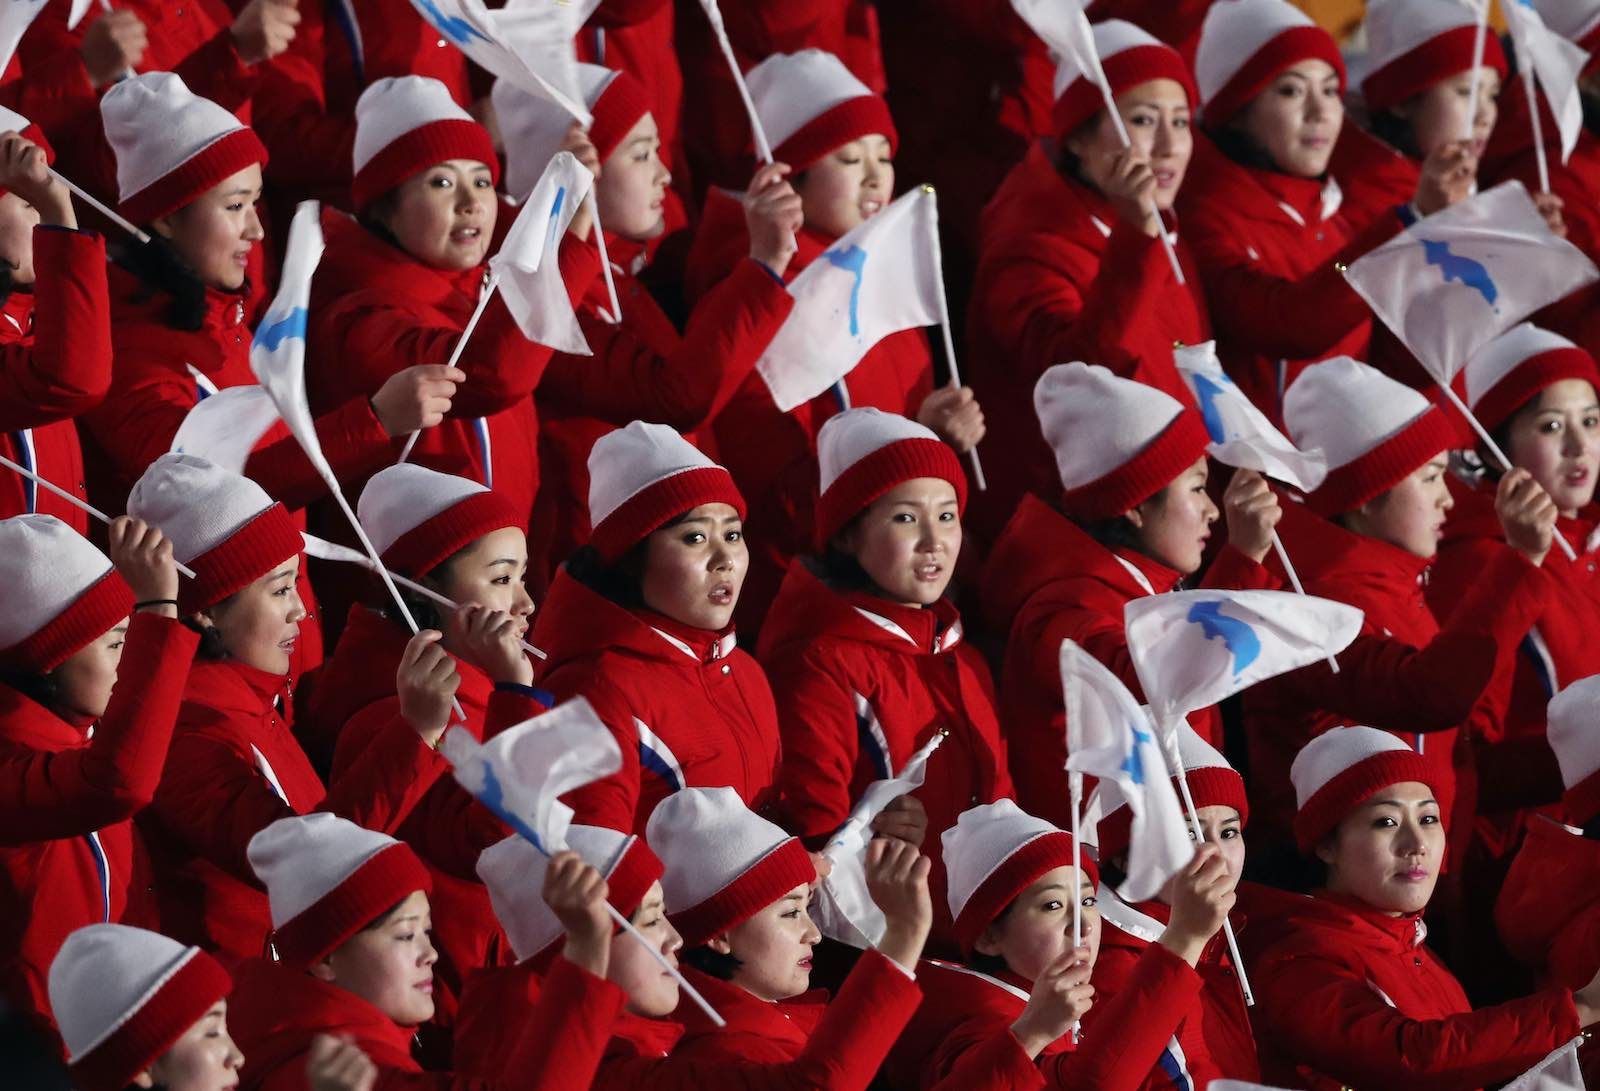 North Korean cheerleaders at the opening ceremony of the 2018 Winter Olympic Games, 9 February 2018 in Pyeongchang-gun, South Korea (Ian MacNicol/Getty Images)